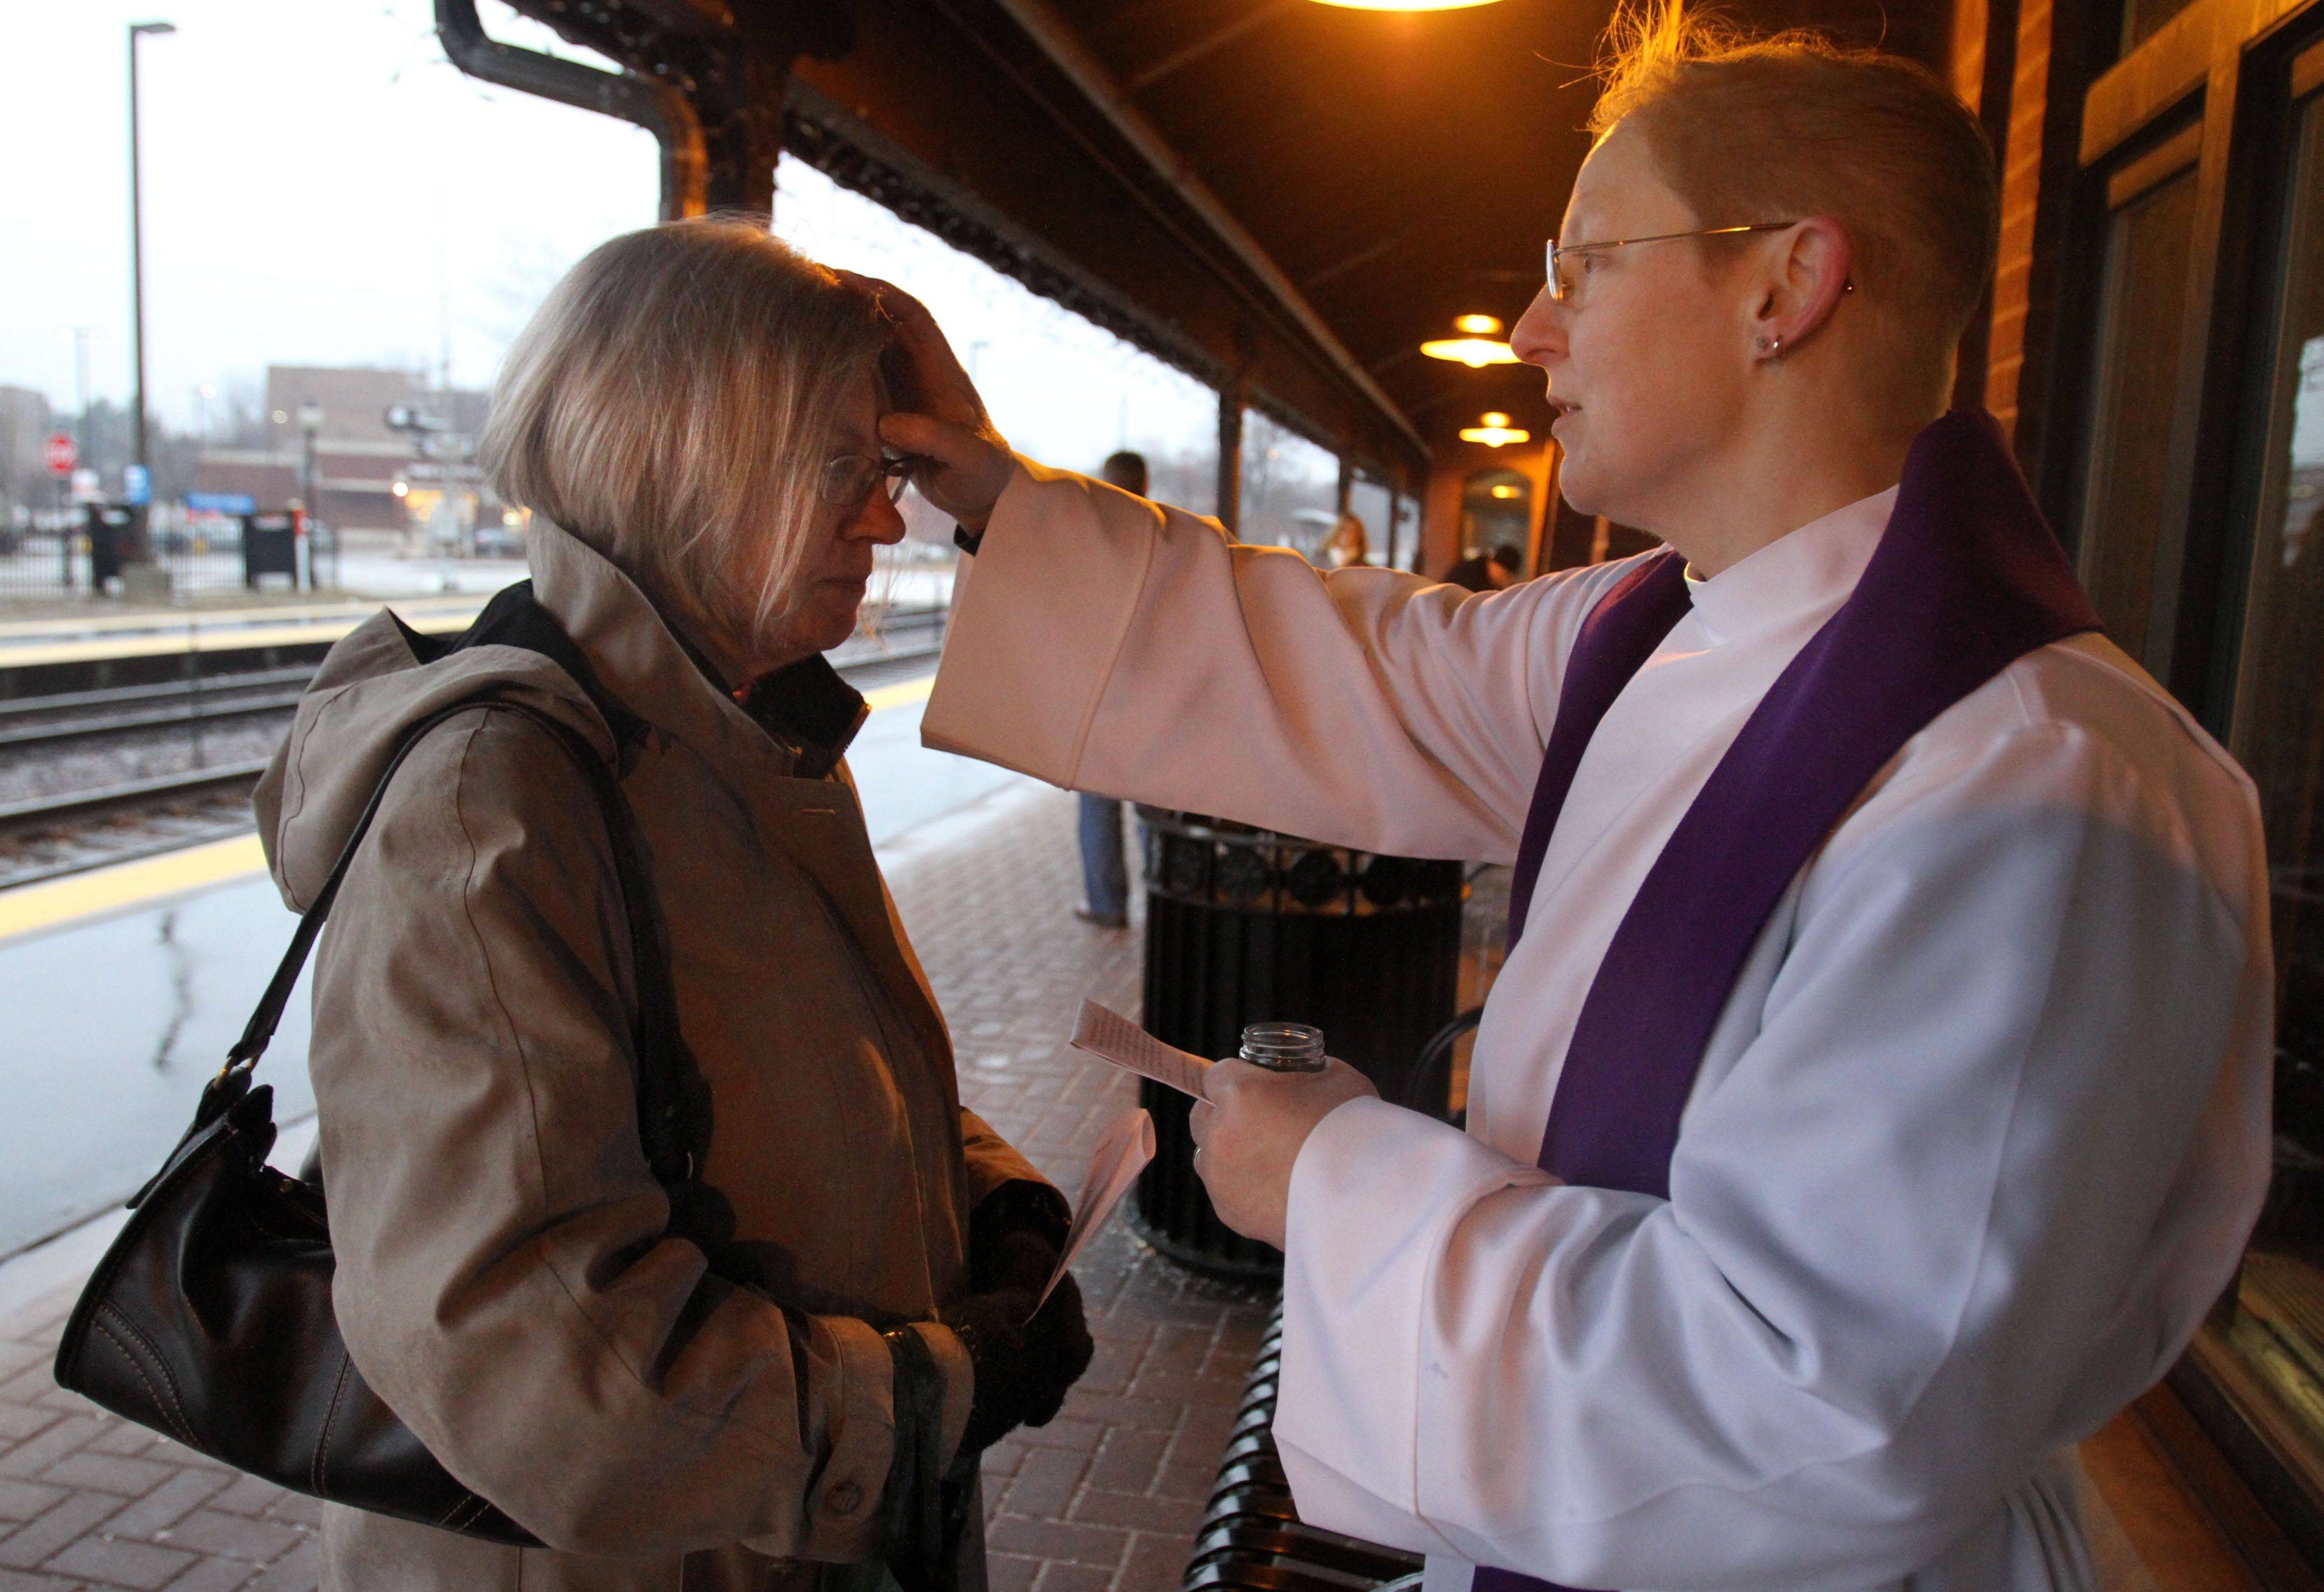 The Rev. M.E. Eccles, associate rector with St. Simon's Episcopal Church in Arlington Heights offers the imposition of ashes to morning commuter Mary Lou Gleason of Arlington Heights at the downtown Arlington Heights Metra station on Wednesday, March 9th.